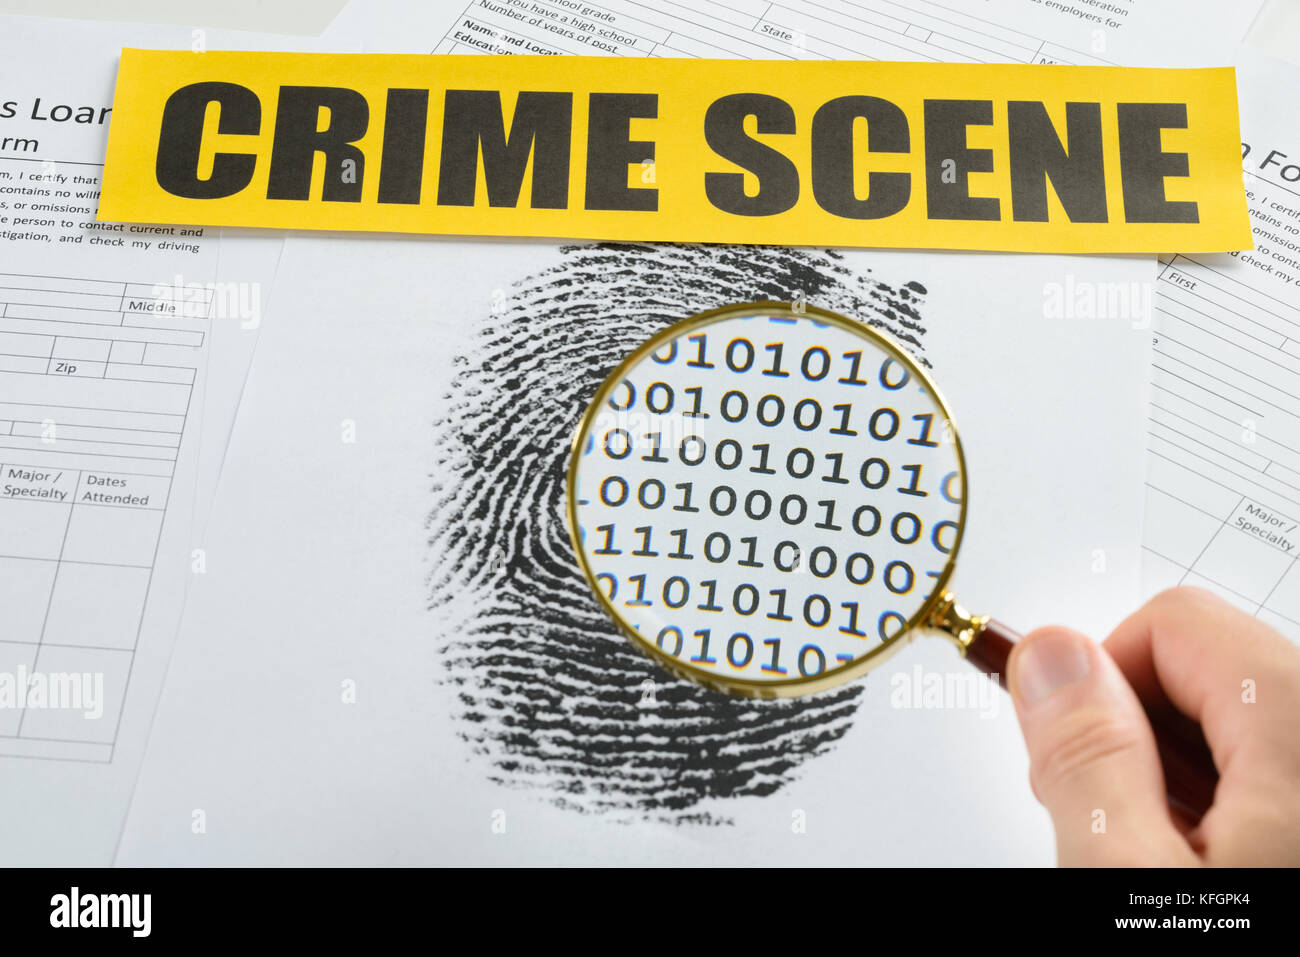 Person Hand With Magnifying Glass Over Document Revealing Binary Code And Crime Scene Tape On It - Stock Image